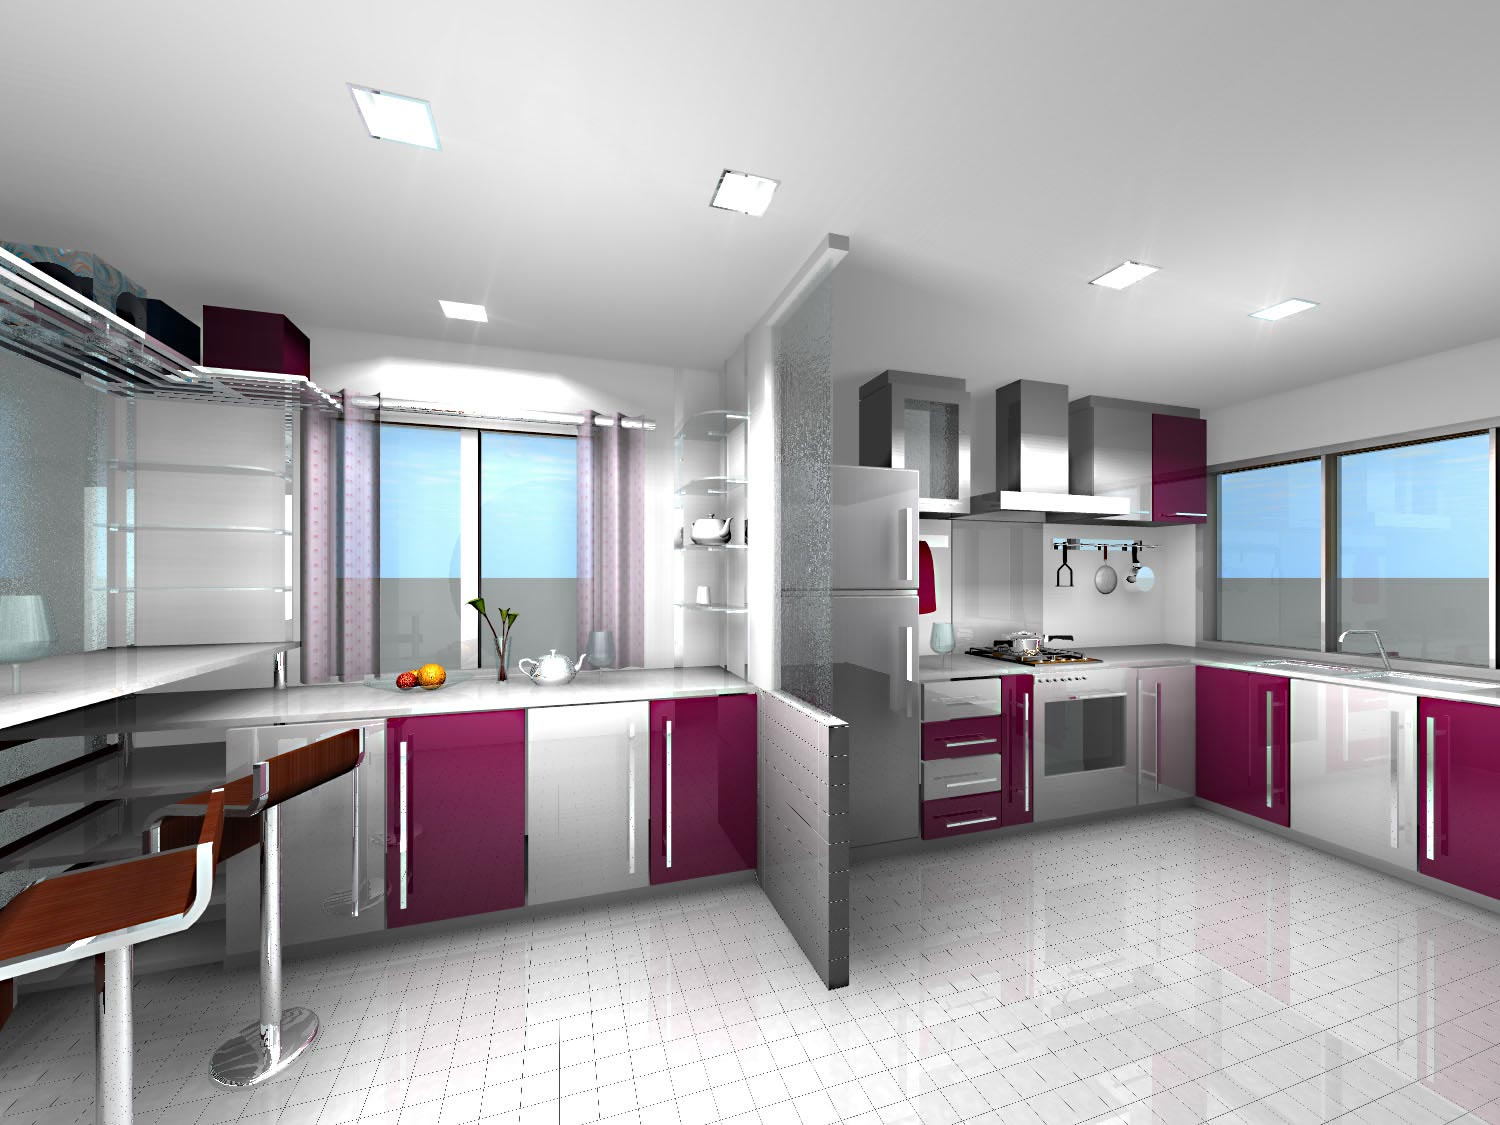 Design Kitchen Set Minimalis Modern Fotos De Cozinhas Decoradas